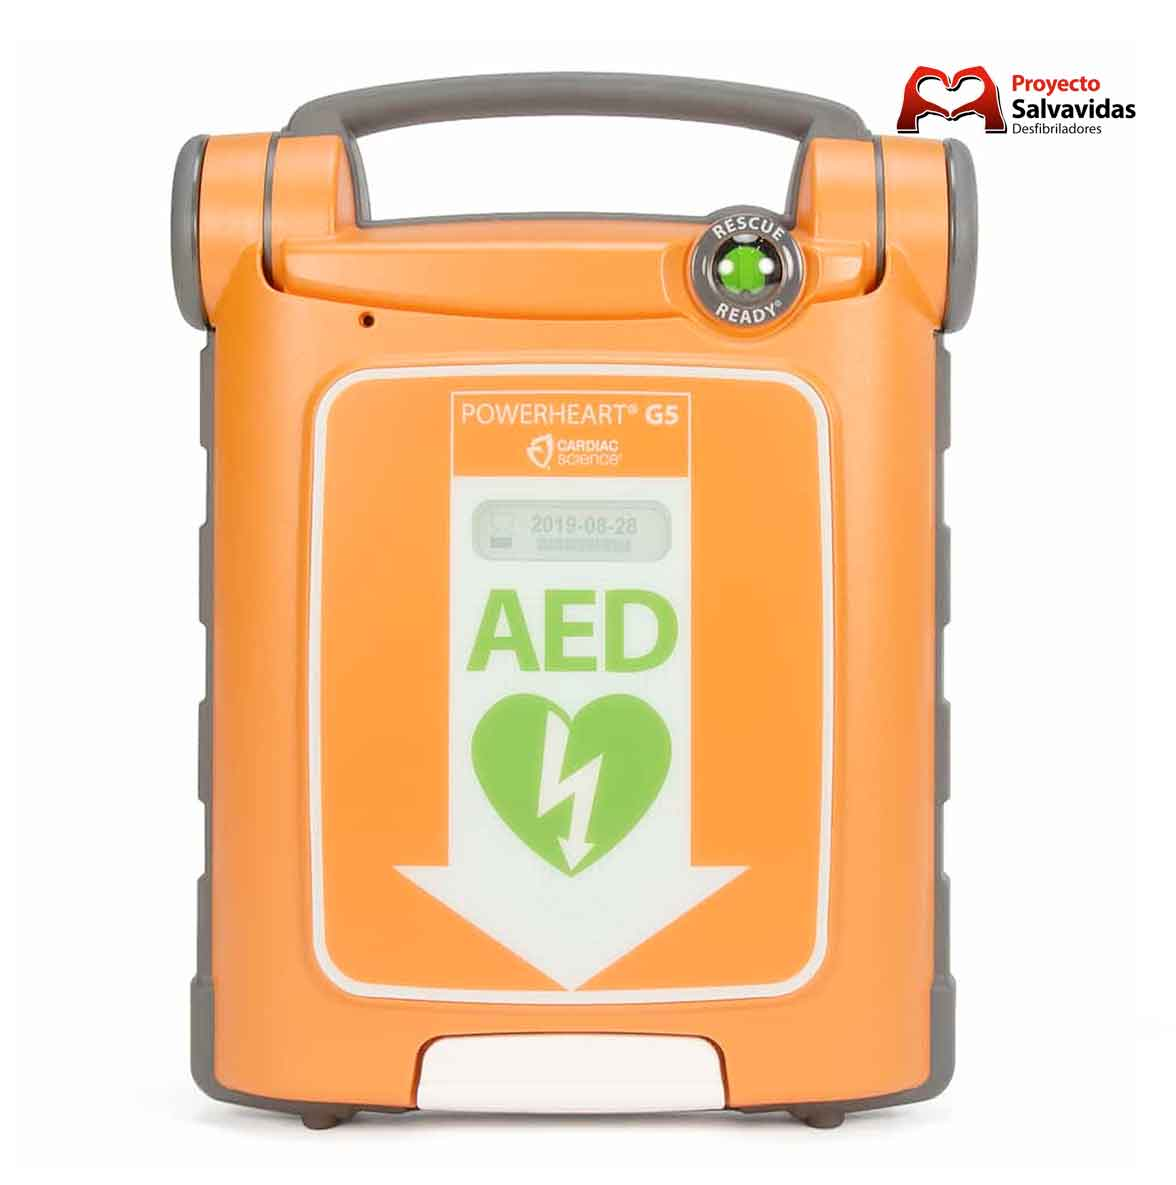 Sale / renting defibrillator Cardiac Science Powerheart G5